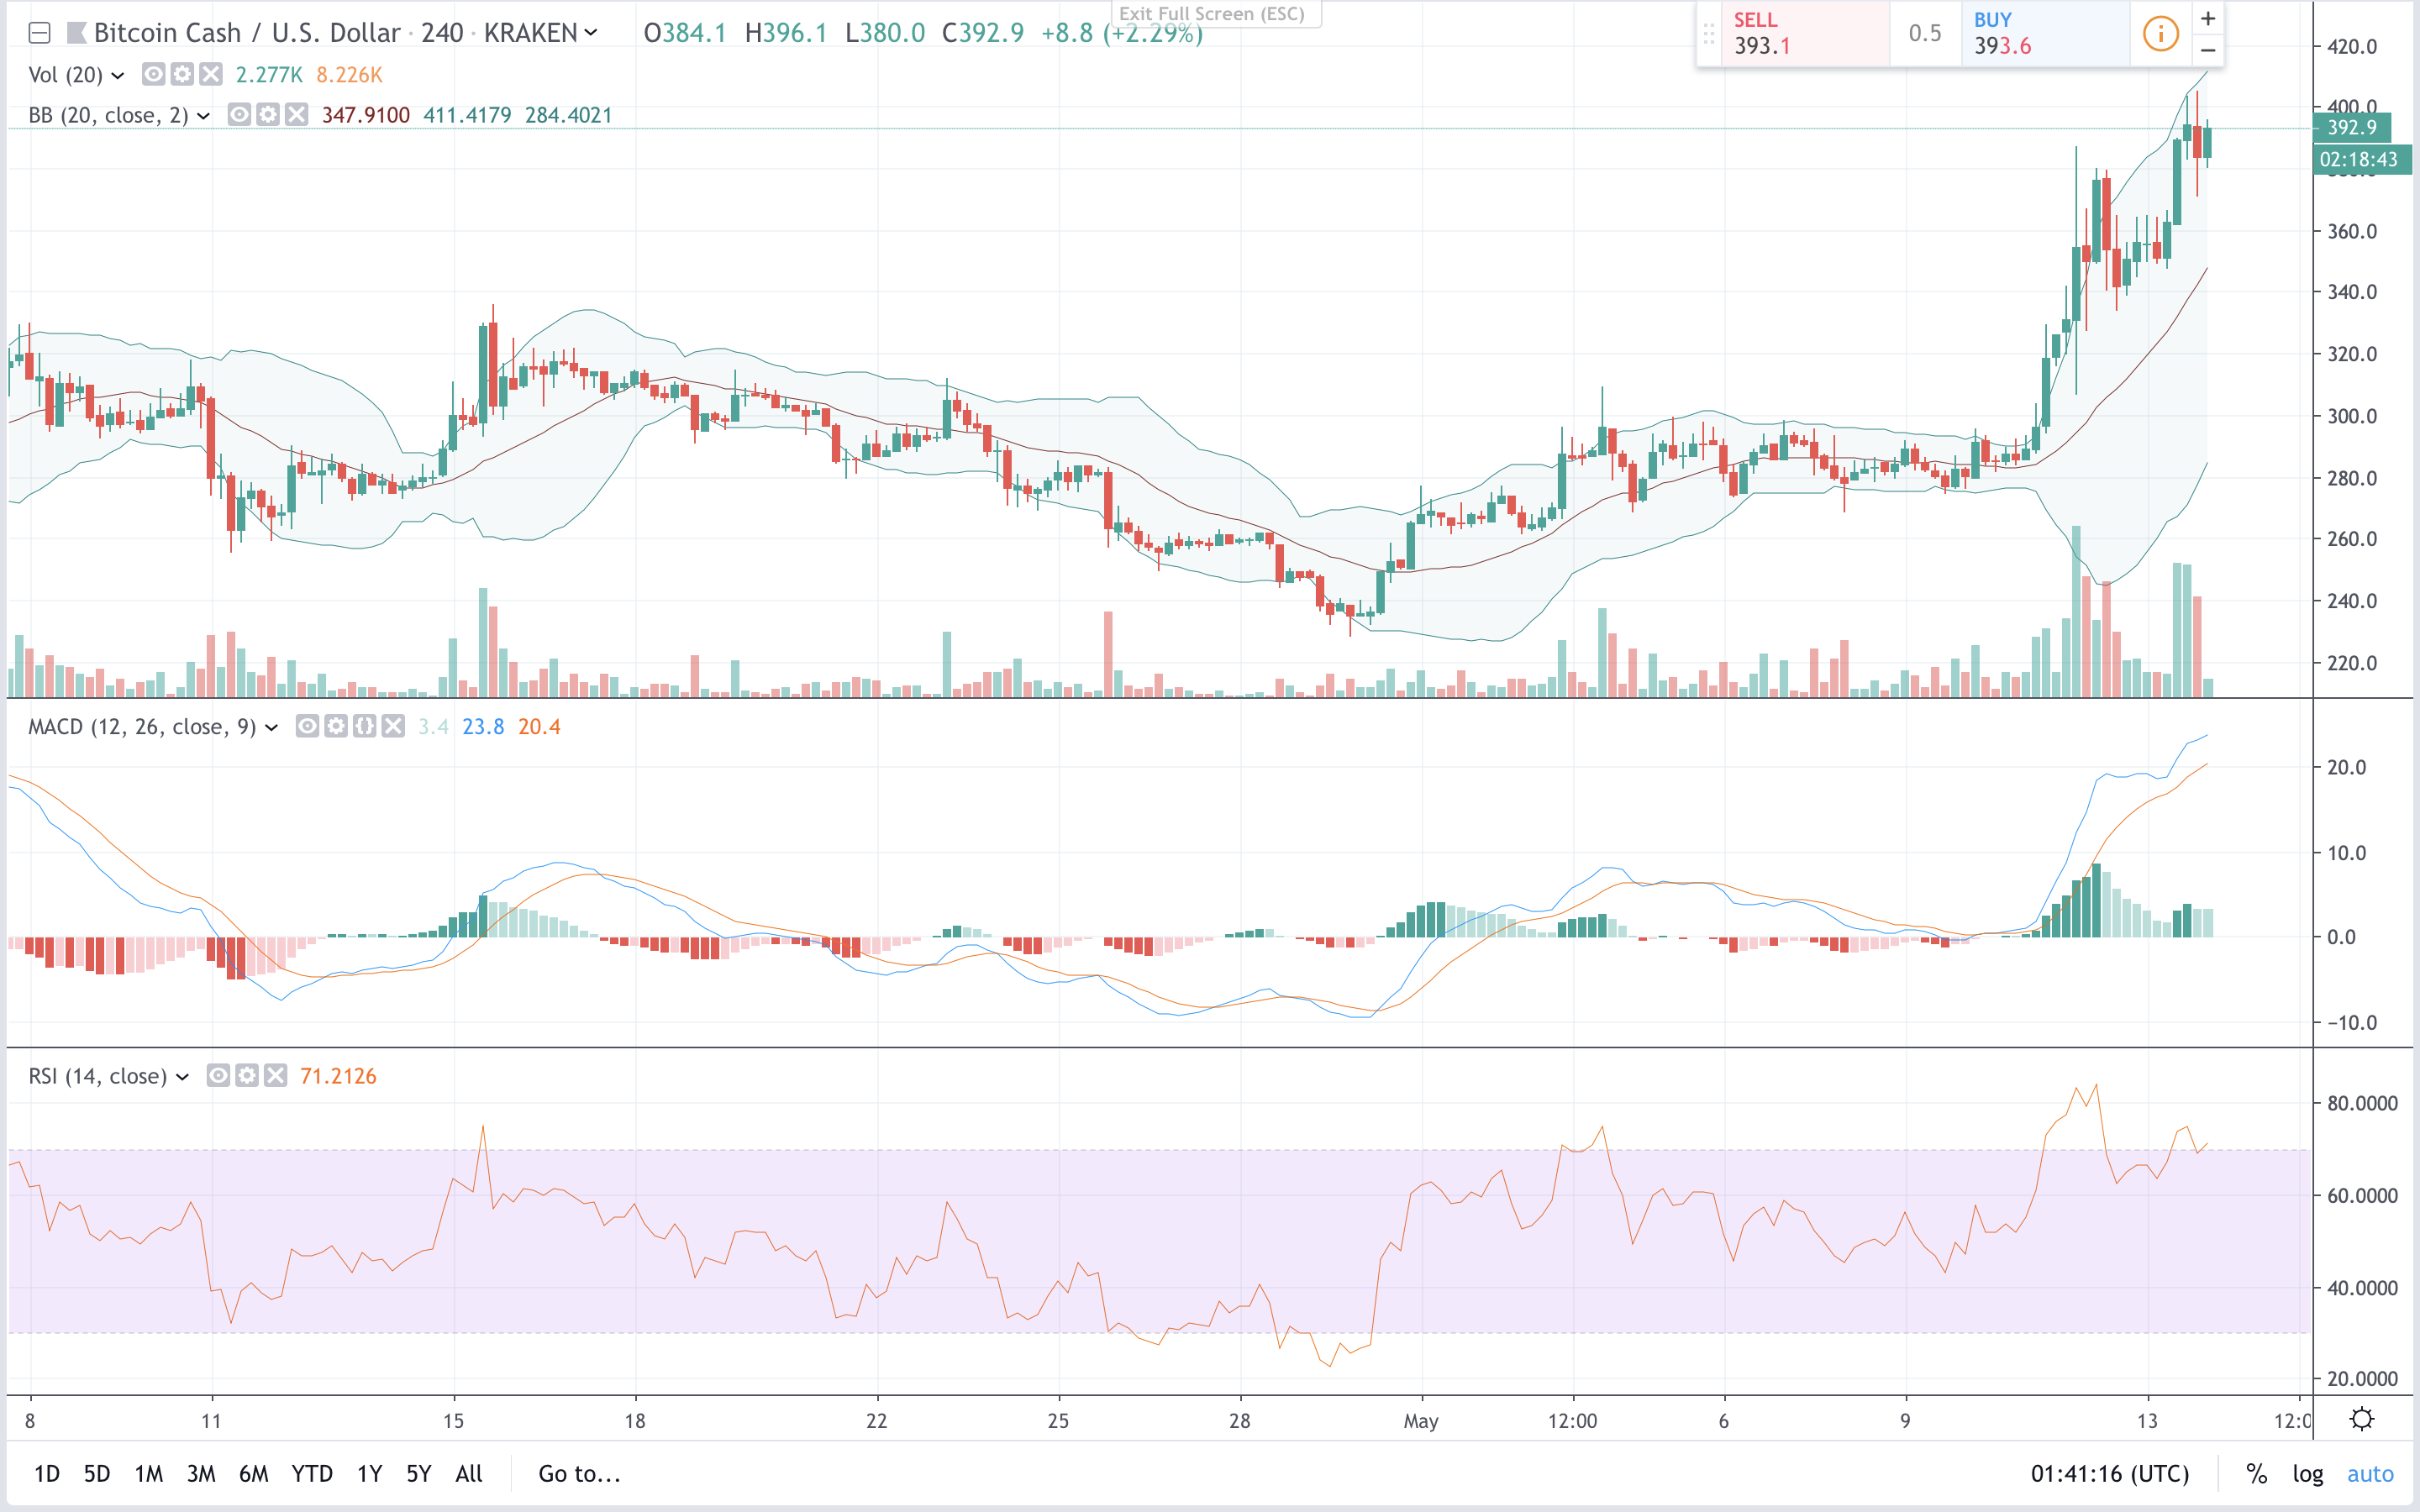 Markets Update: Crypto Prices Continue to Gather Bullish Momentum